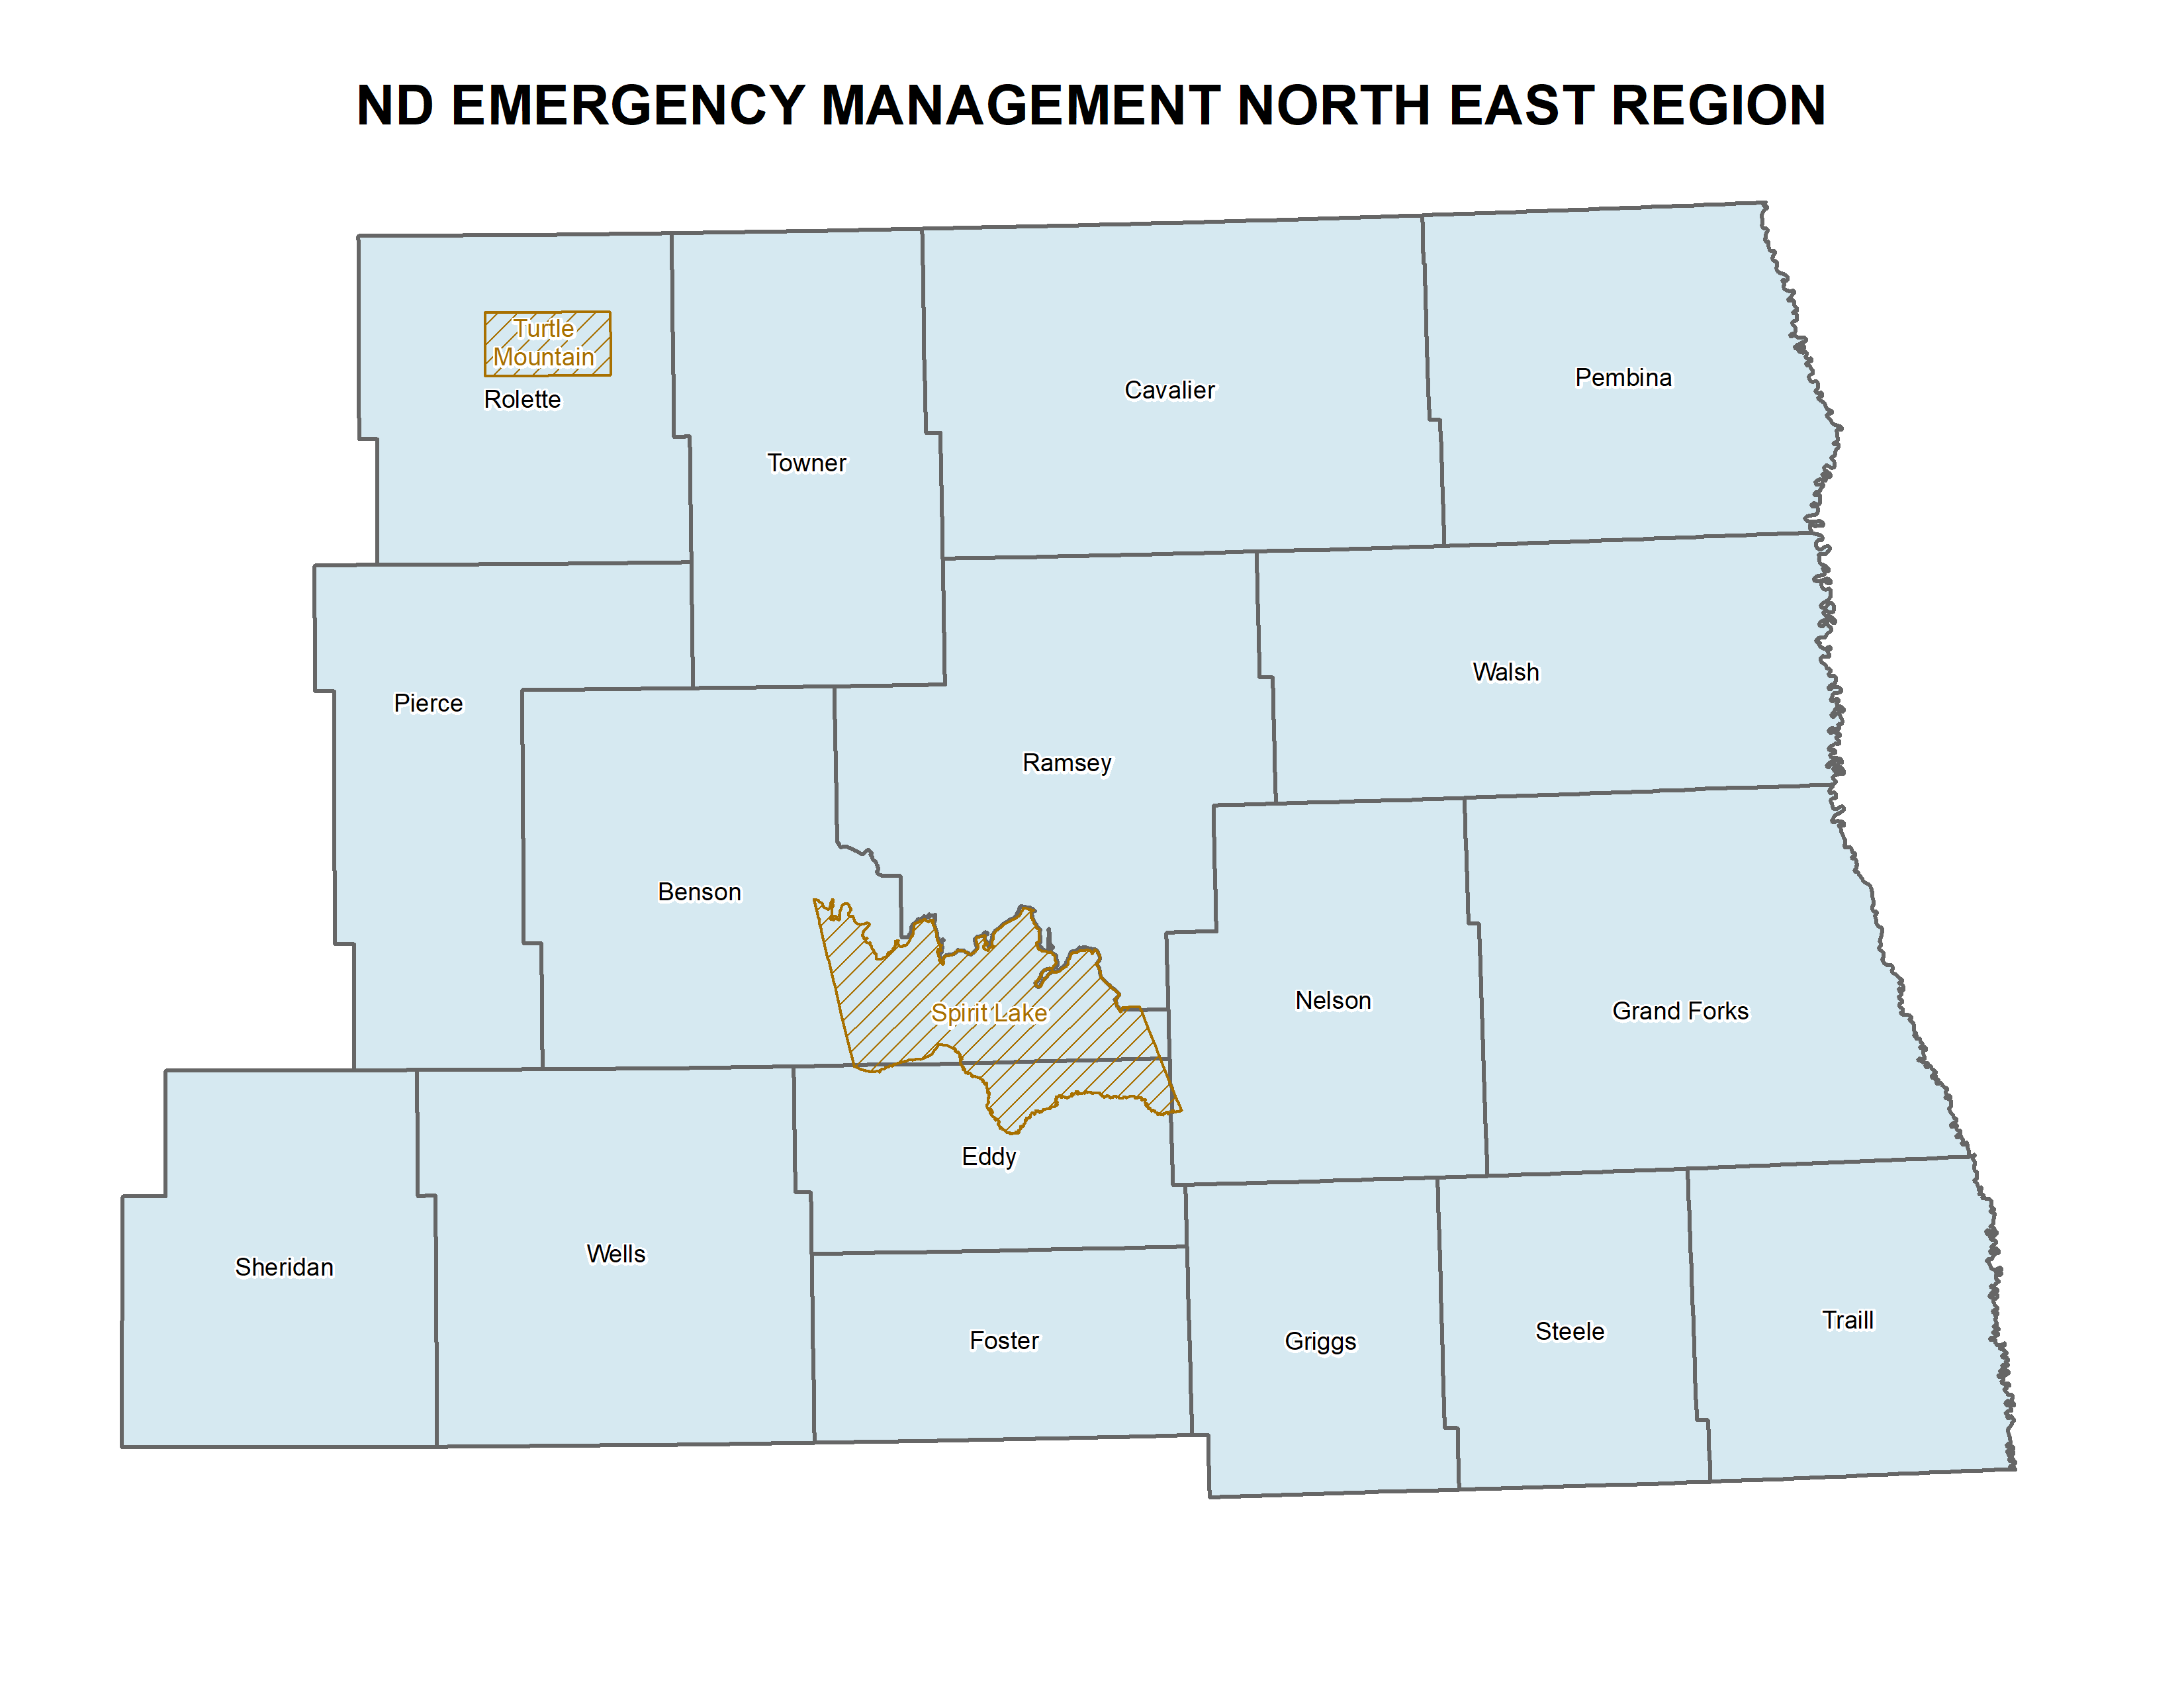 Northeast ND Region